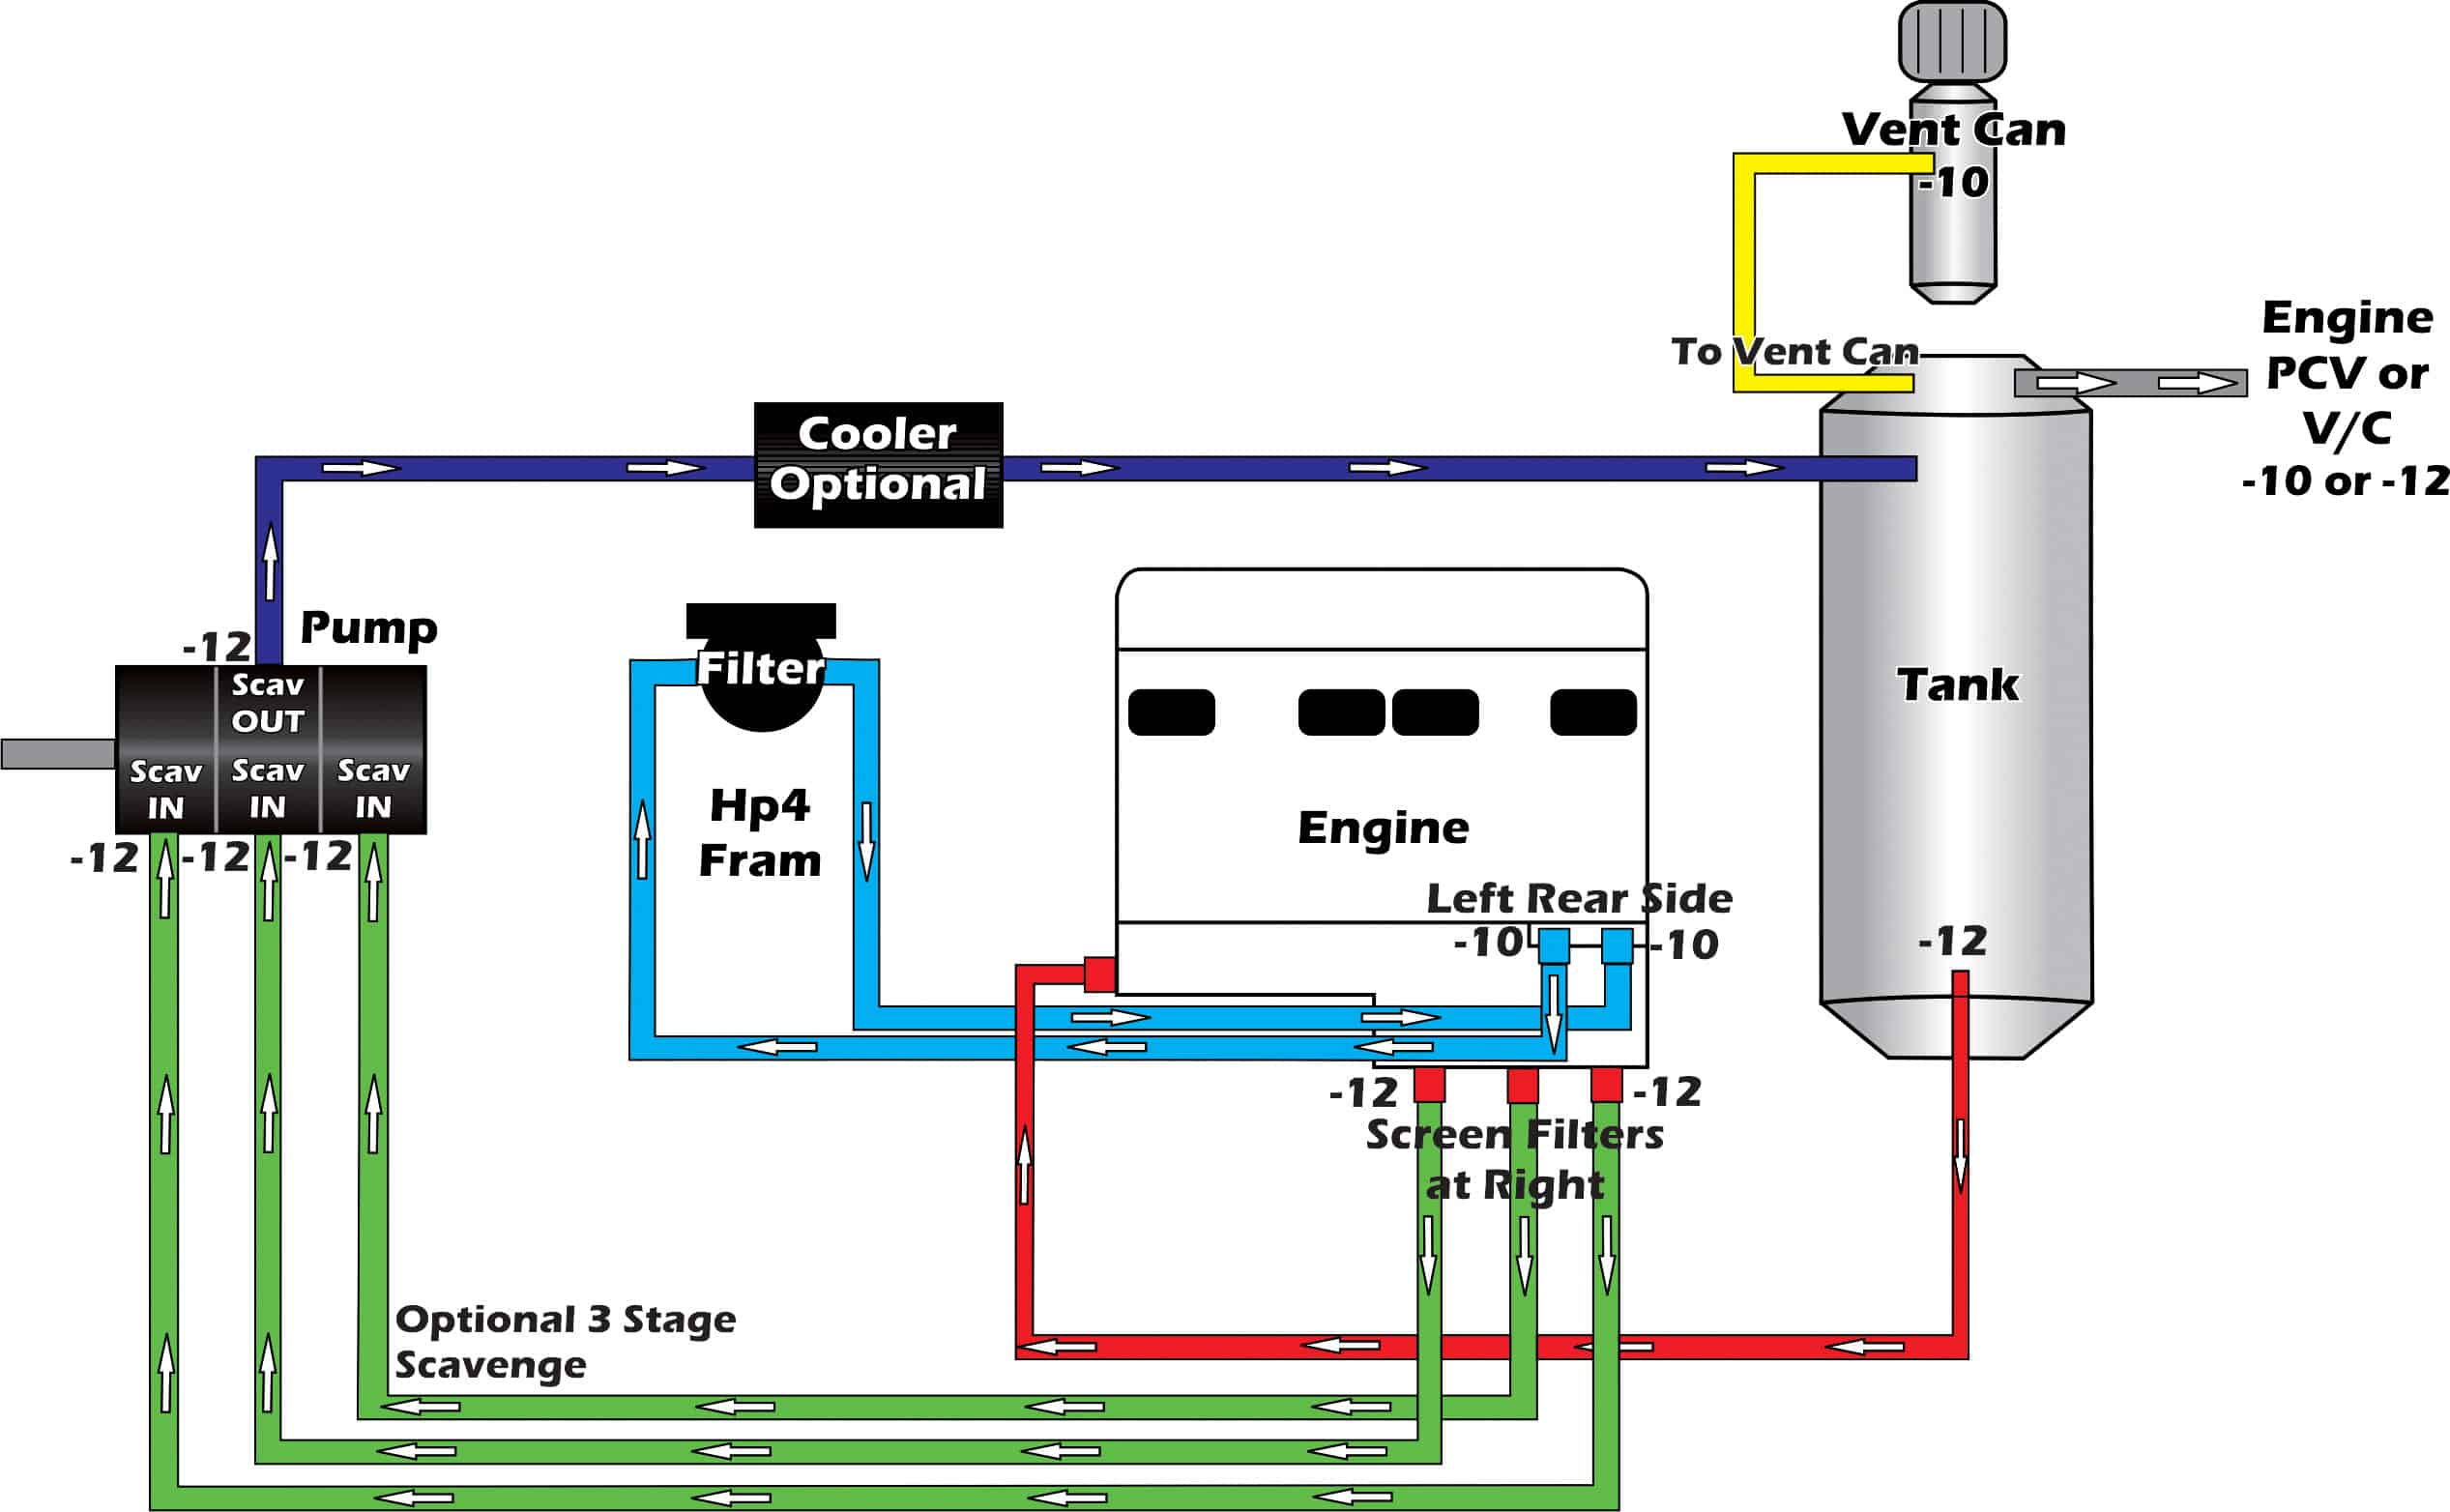 plumbing schematics rh drysump com A O. Smith Well Pump Parts Diagram Nordyne Heat Pump Wiring Diagram